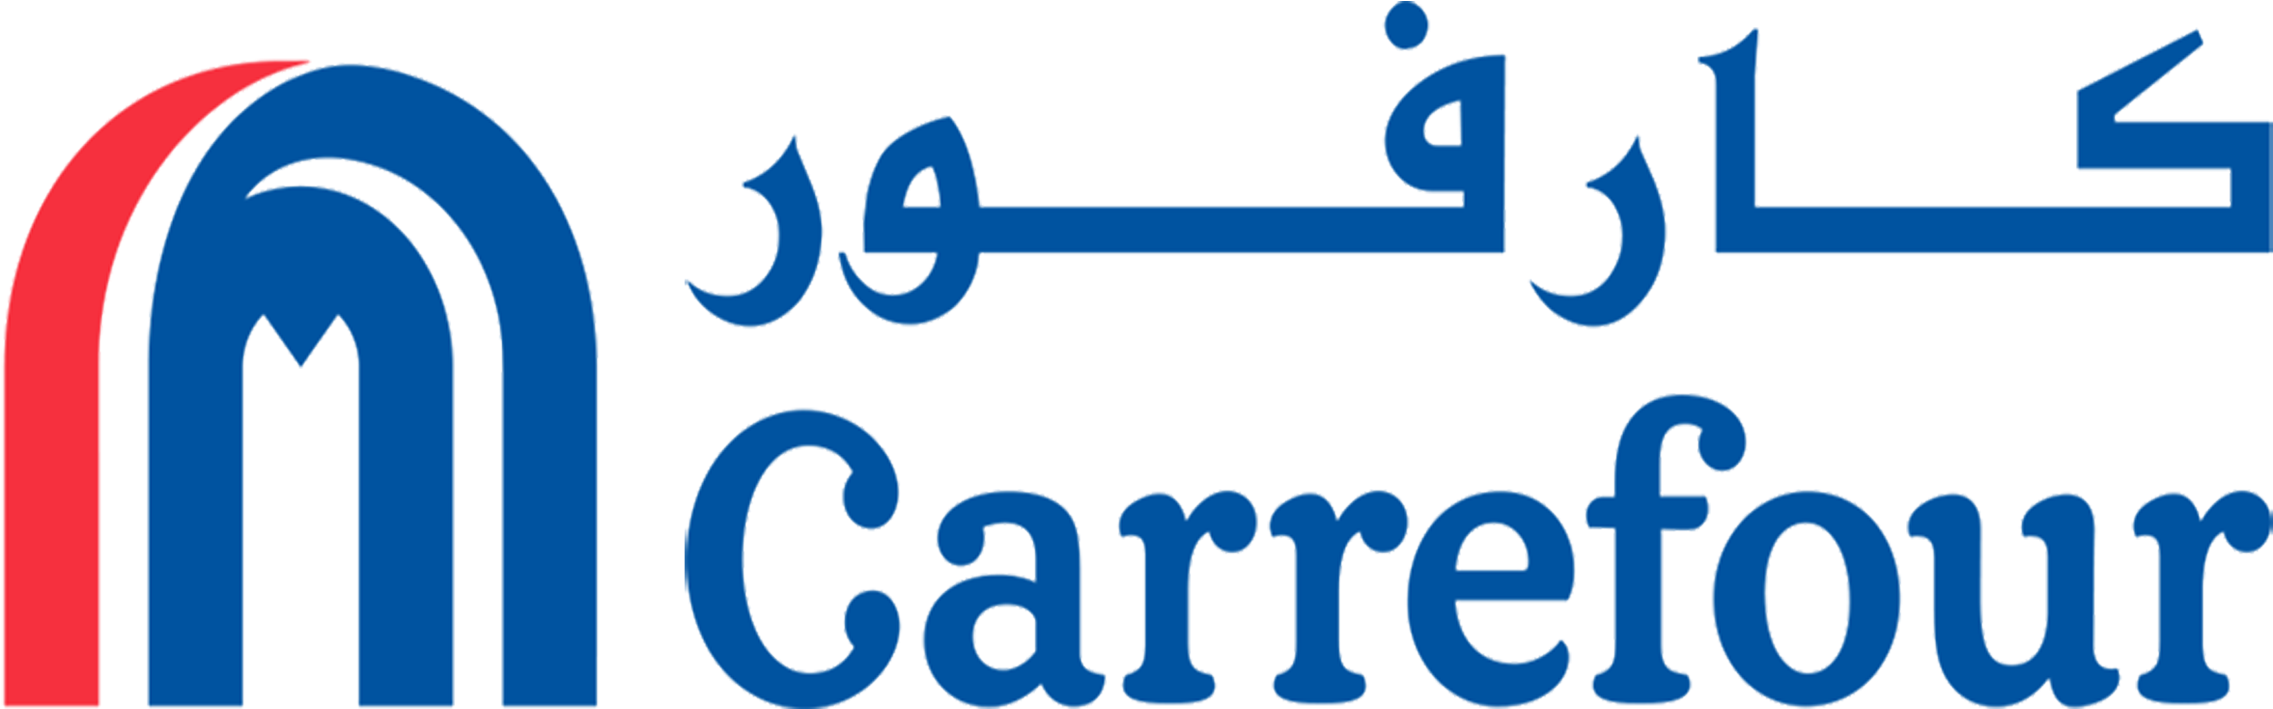 Download Trusted By Hundreds Of Happy Customers - Carrefour Uae Pluspng.com  - Carrefour Logo PNG